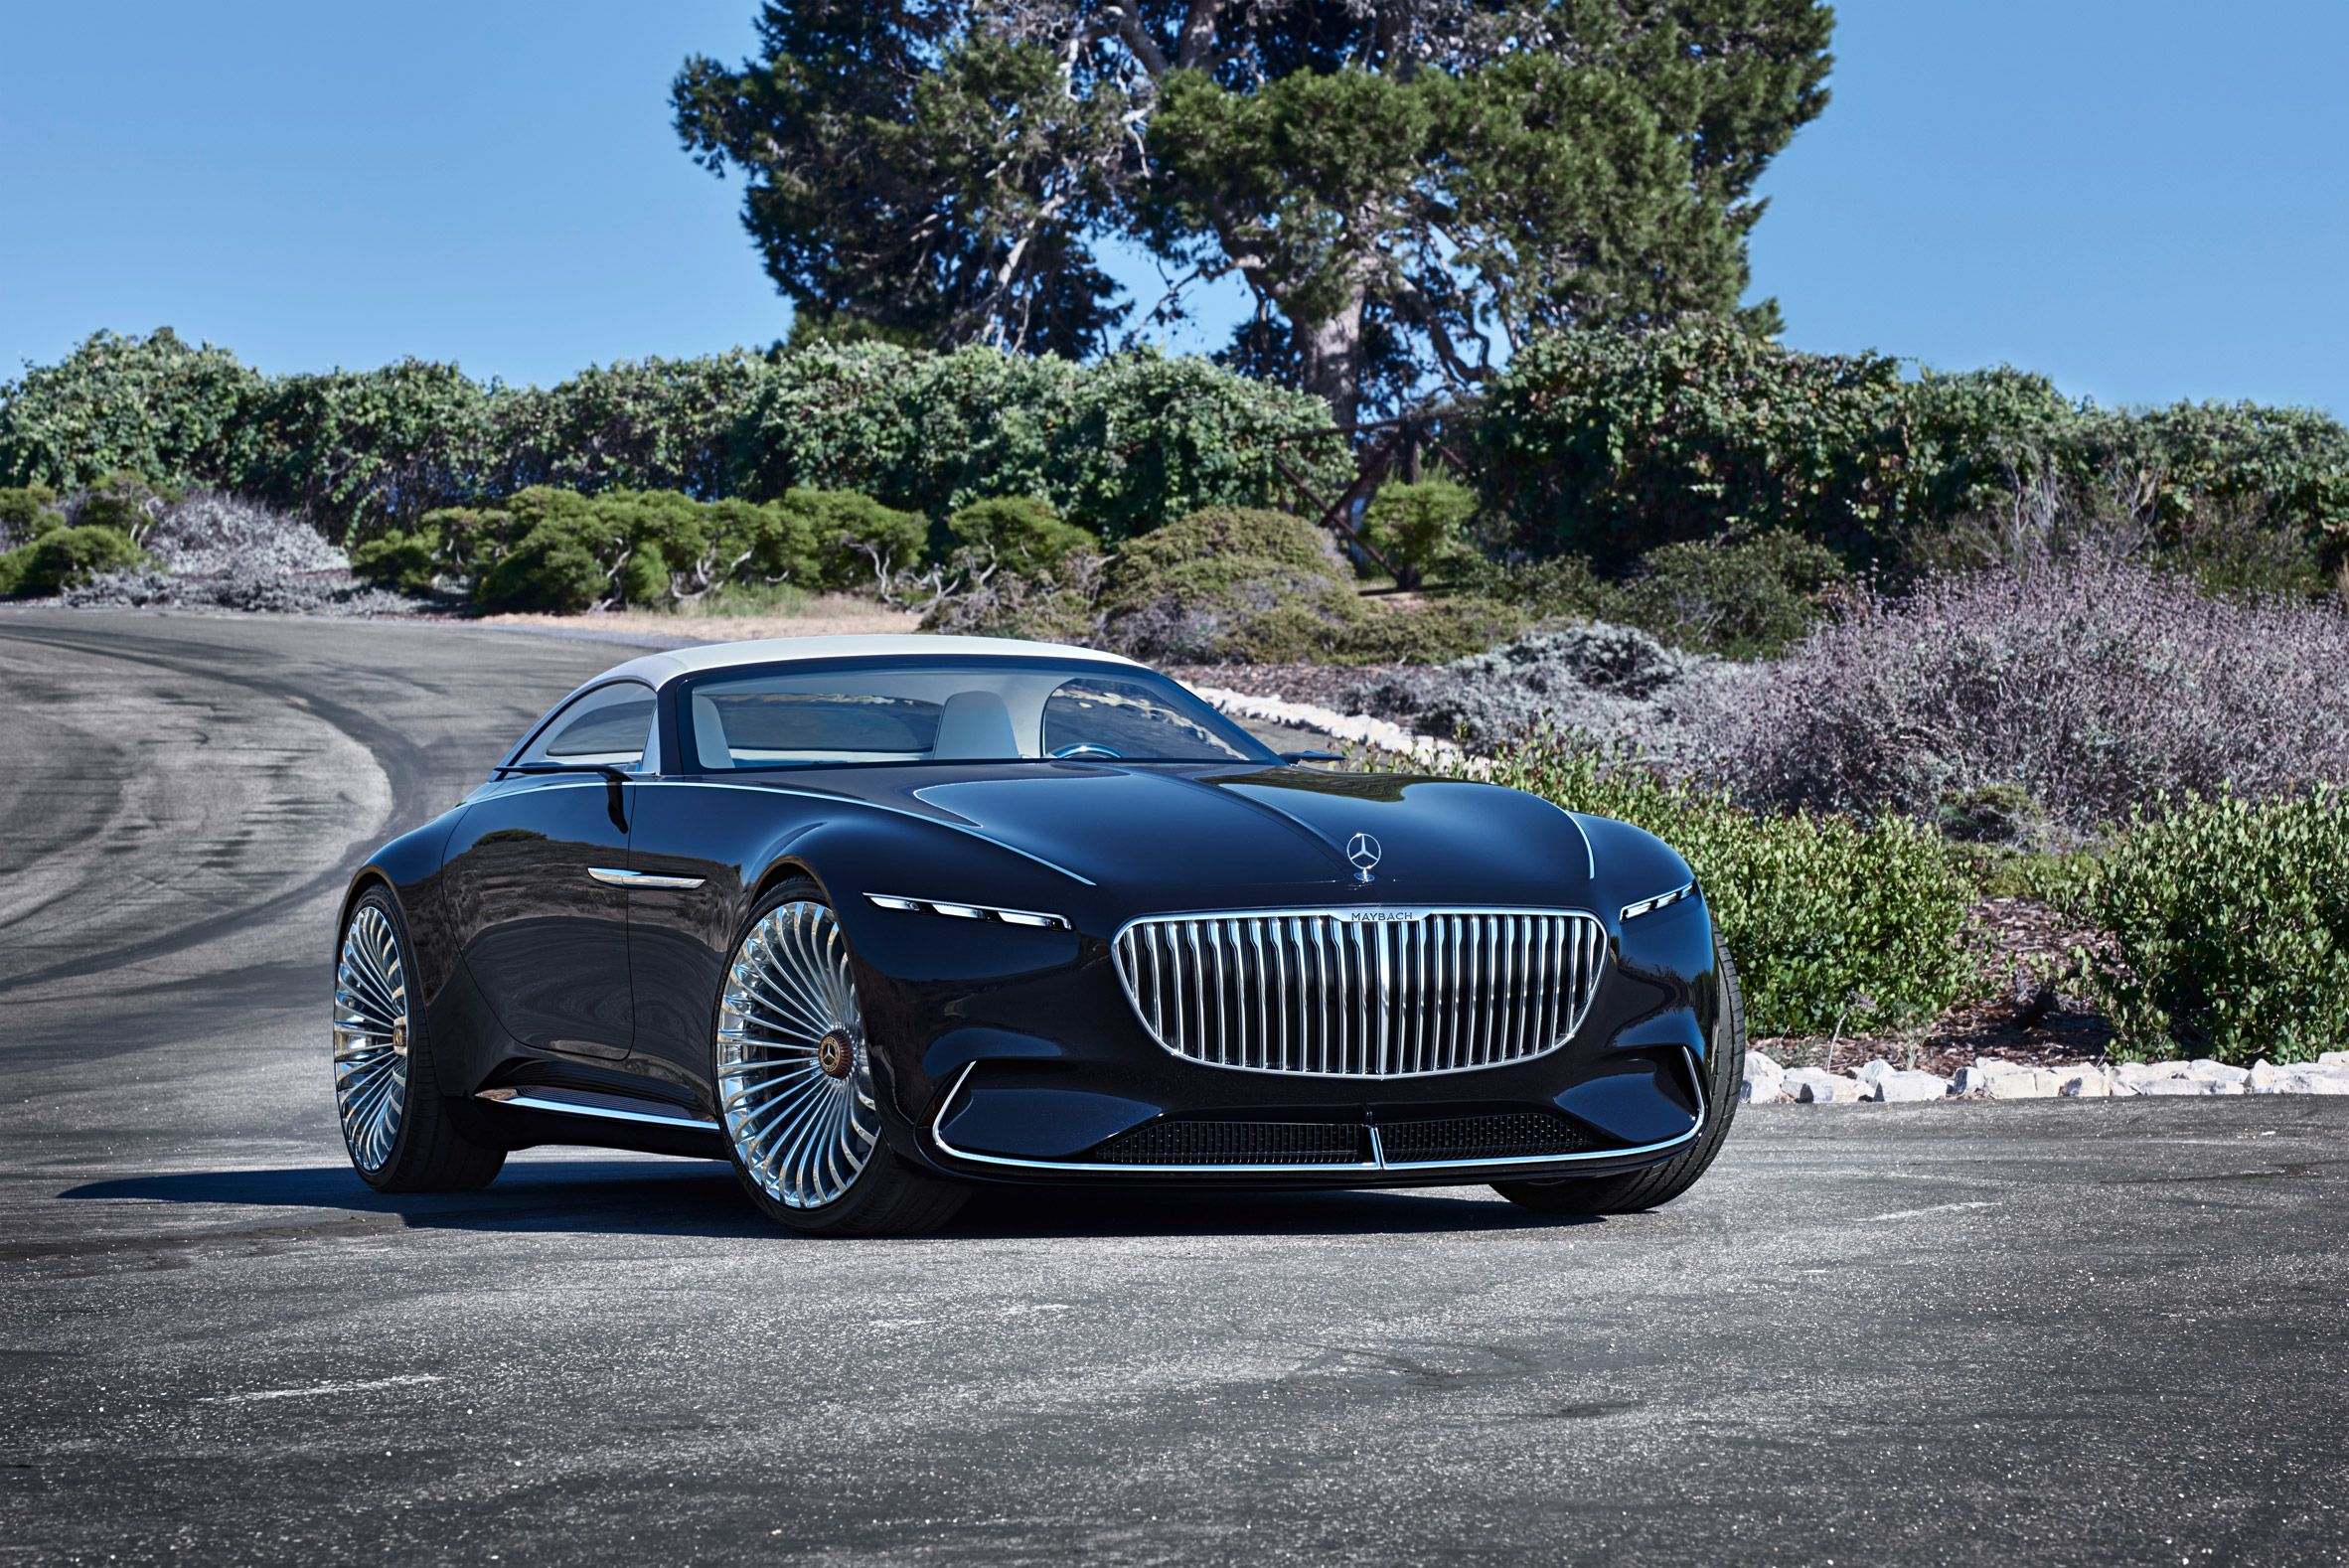 Mercedes-Benz\'s latest concept car takes its design cues from art ...